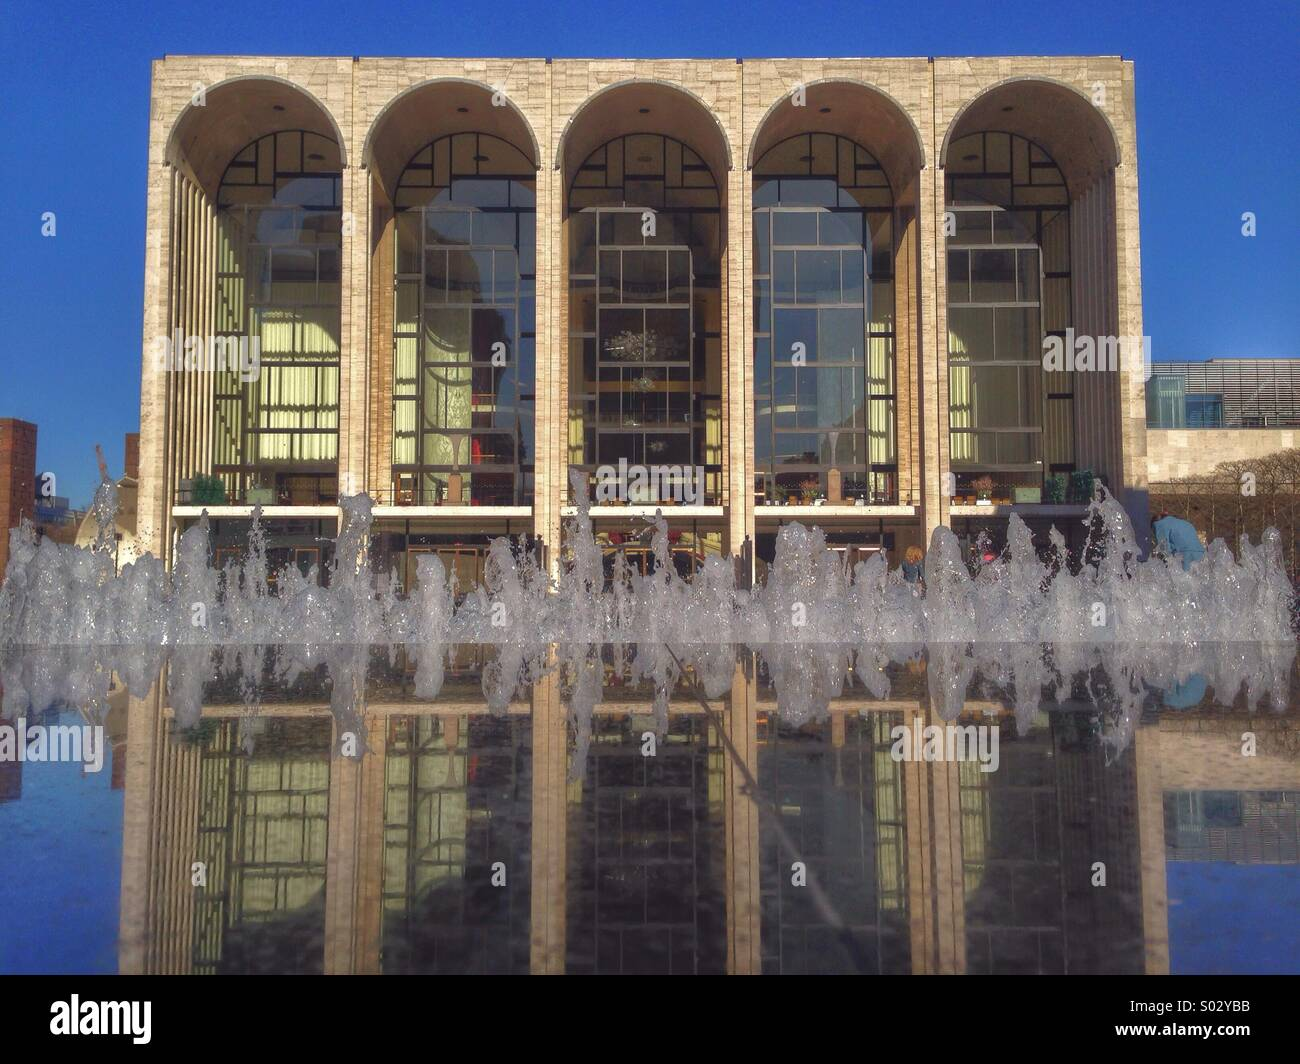 Metropolitan Opera House at Lincoln Center in New York City. - Stock Image